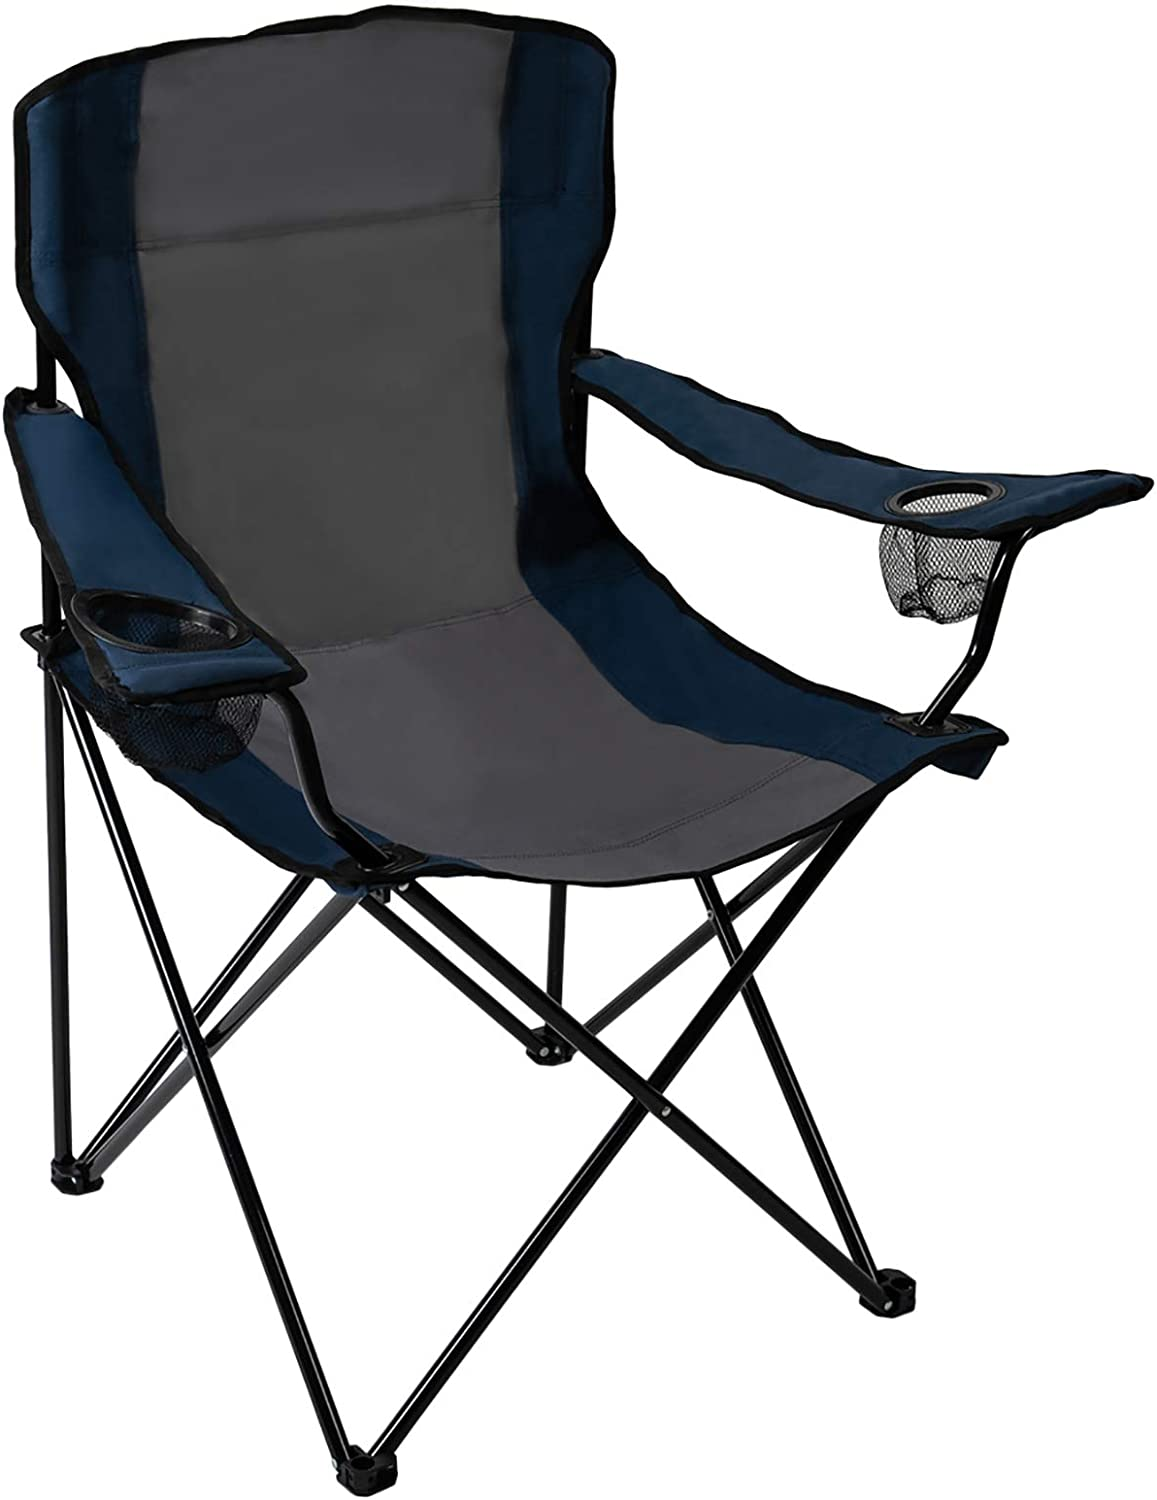 Pacific Pass Portable Sports Two Cup Holders and Carry Bag, Lightweight Backpack Quad Camp Chair for Outdoor, Fishing, Hiking, Middle, Blue/Gray